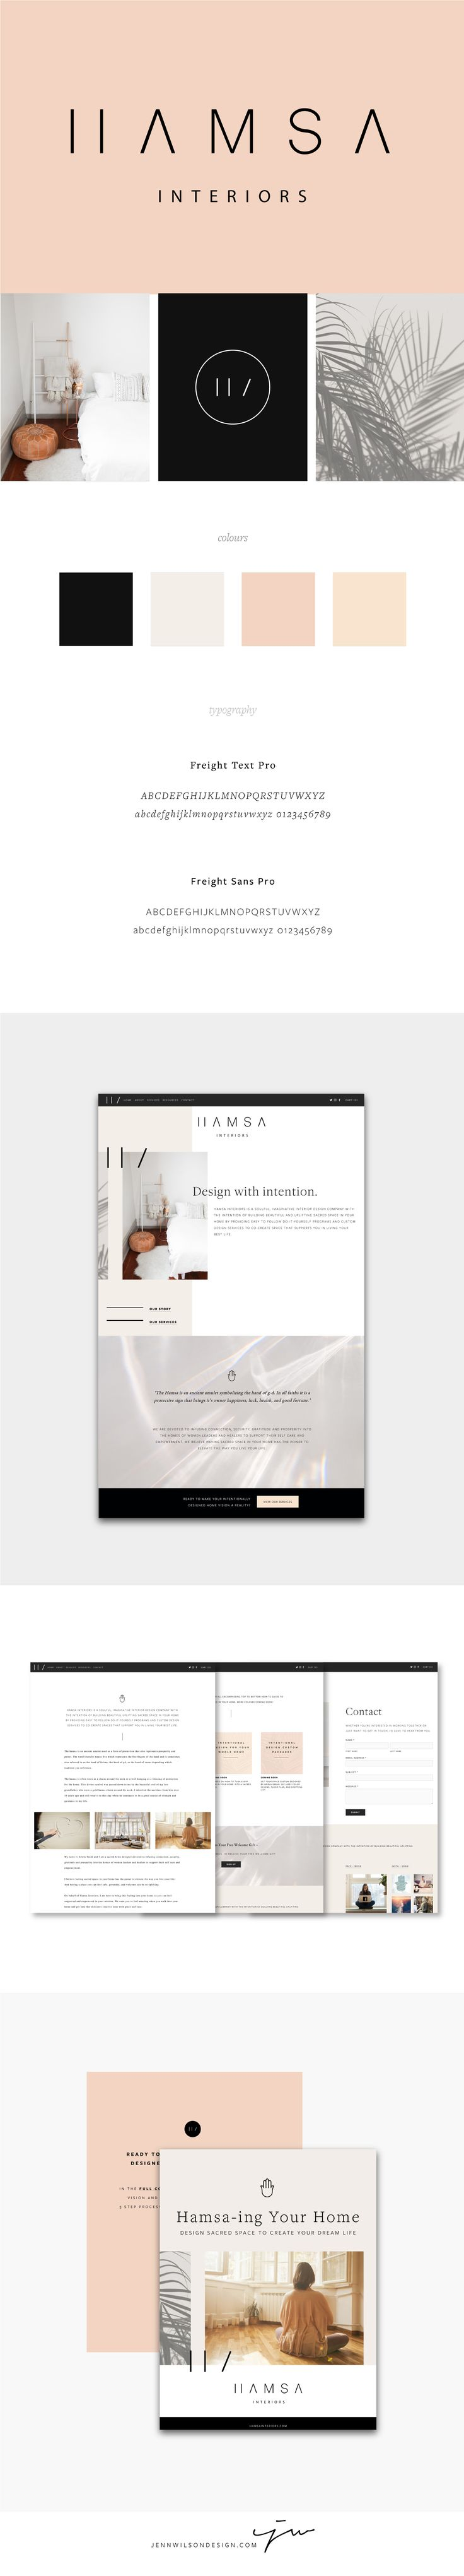 Brand Identity And Website Design For Hamsa Interiors Clean Minimalist